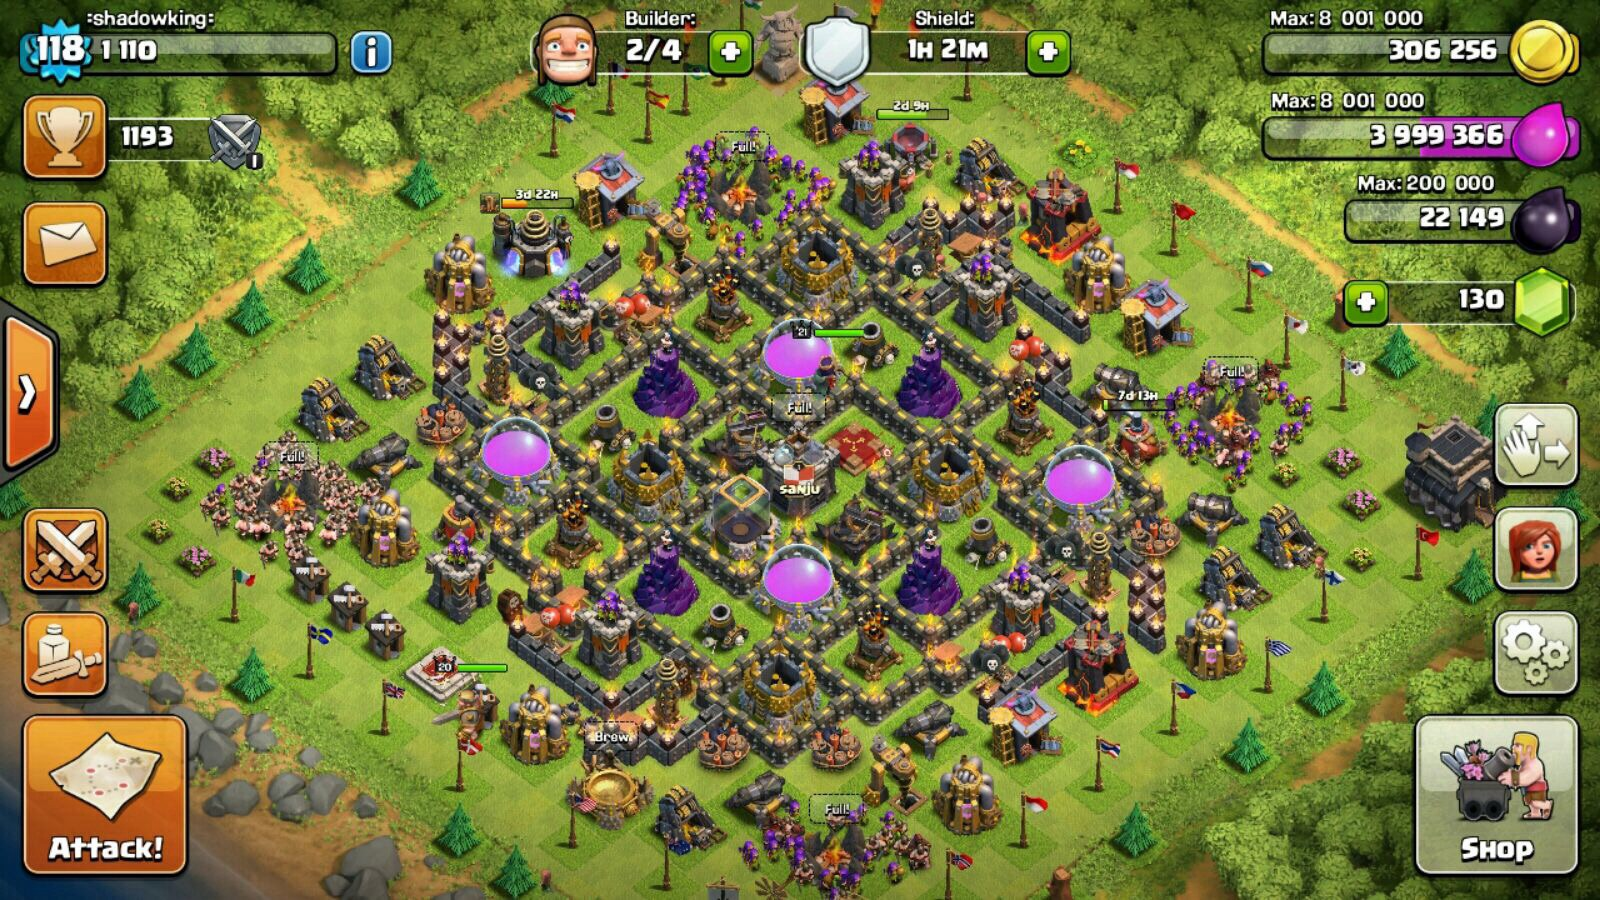 selling clash of clans account lvl 118 clash of clans forum neoseeker forums. Black Bedroom Furniture Sets. Home Design Ideas